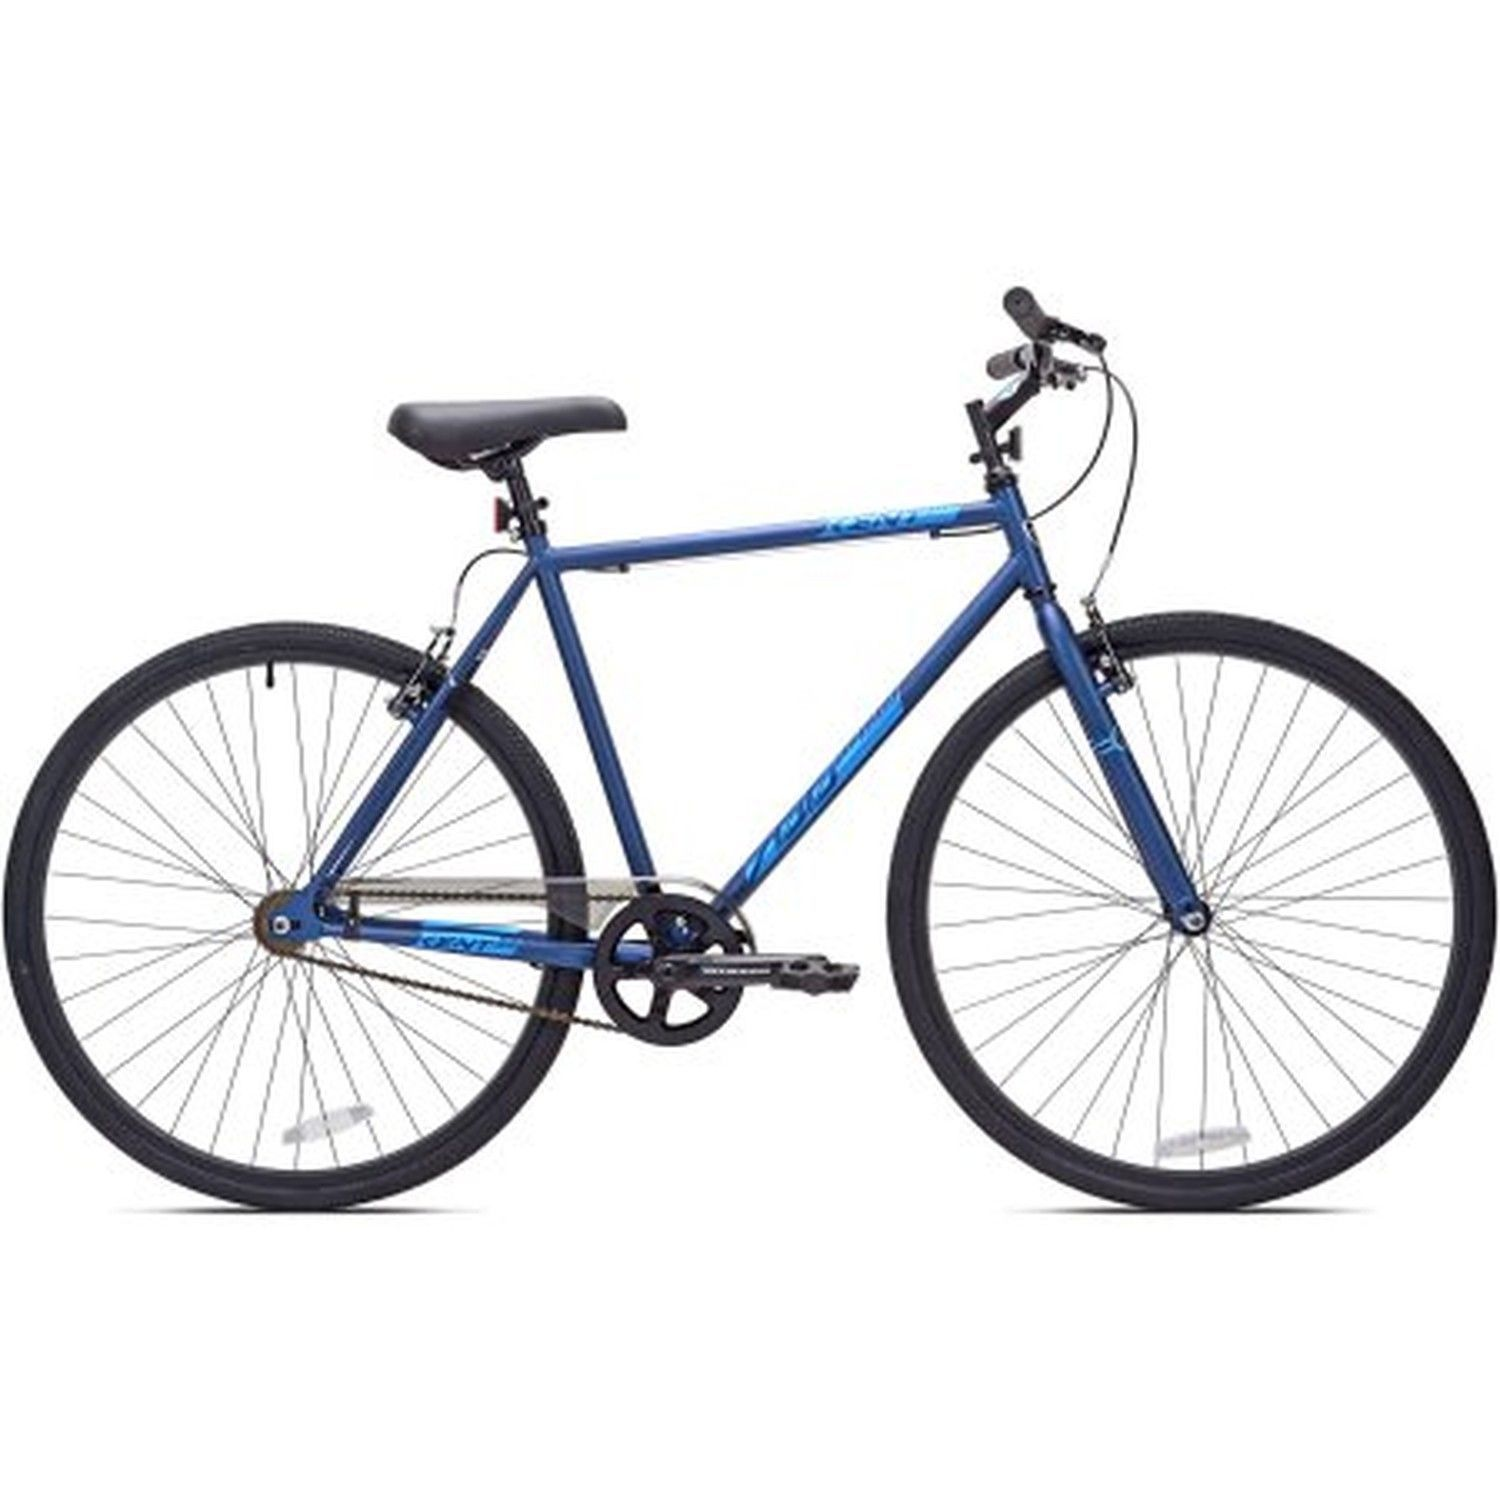 ON SALE Mens Fixie Bike Single Speed Steel Frame Fixed